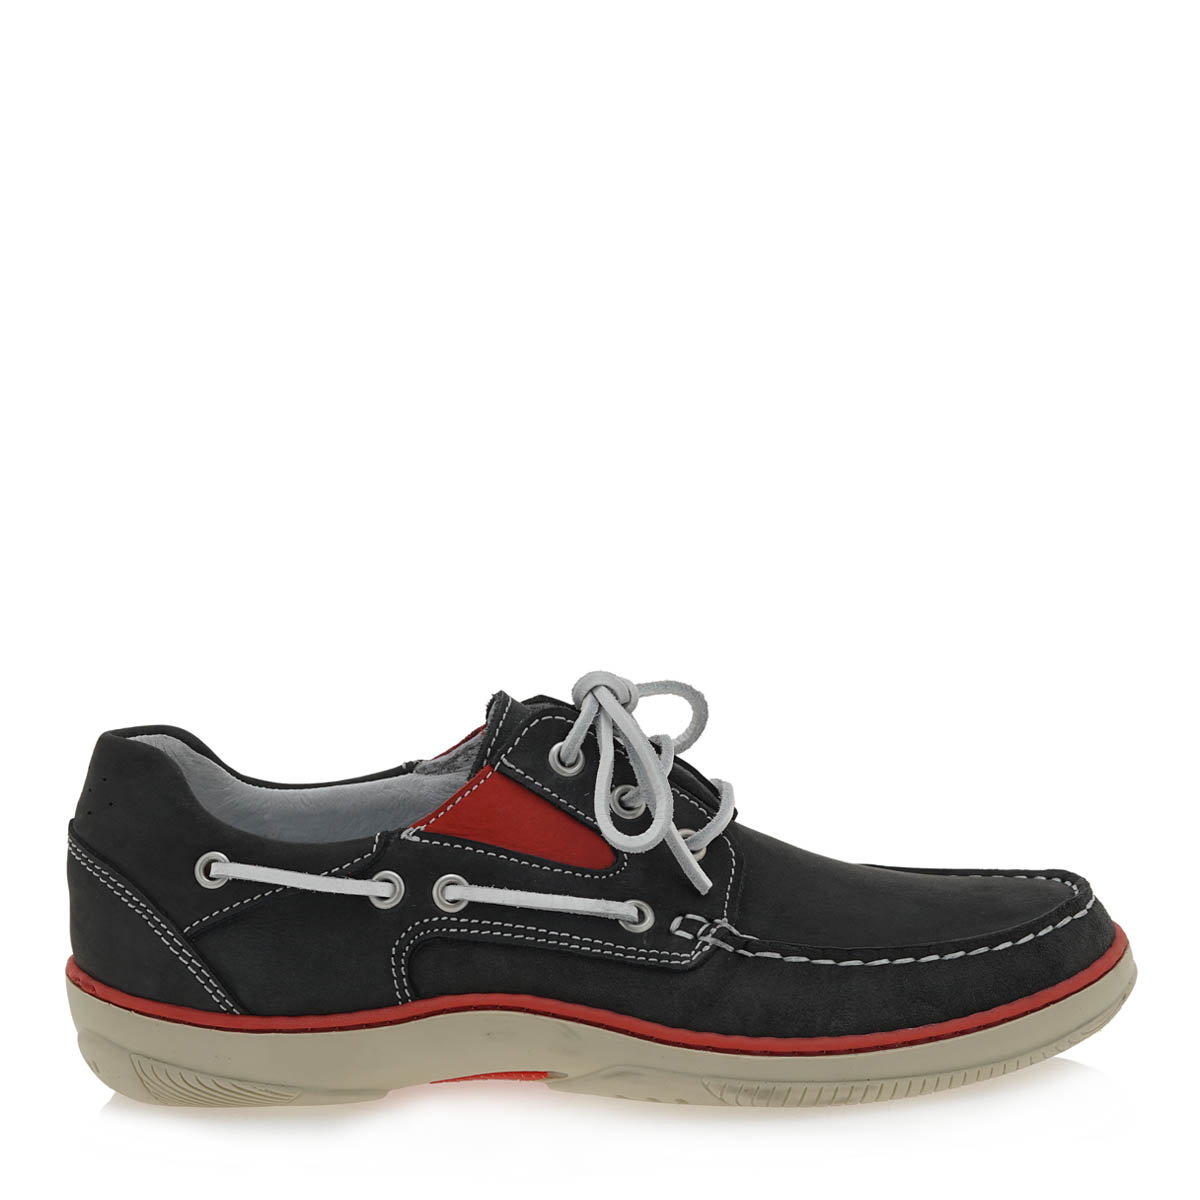 BOAT SHOES σχέδιο: I546L5612 outlet   ανδρικα   boat shoes